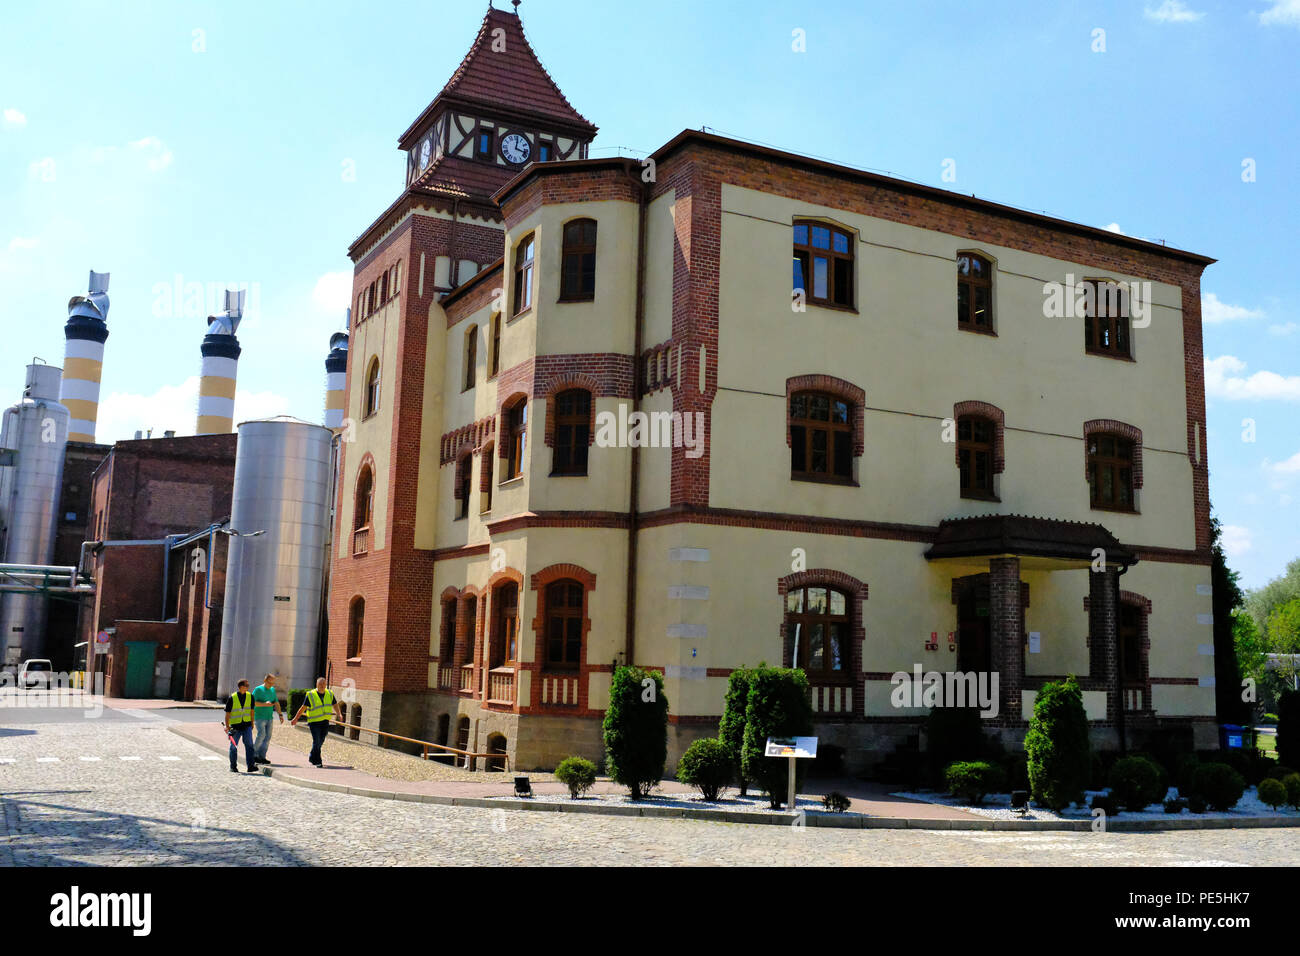 Bachelors workers quarters at the Tychy Brewery in Poland, Europe. - Stock Image